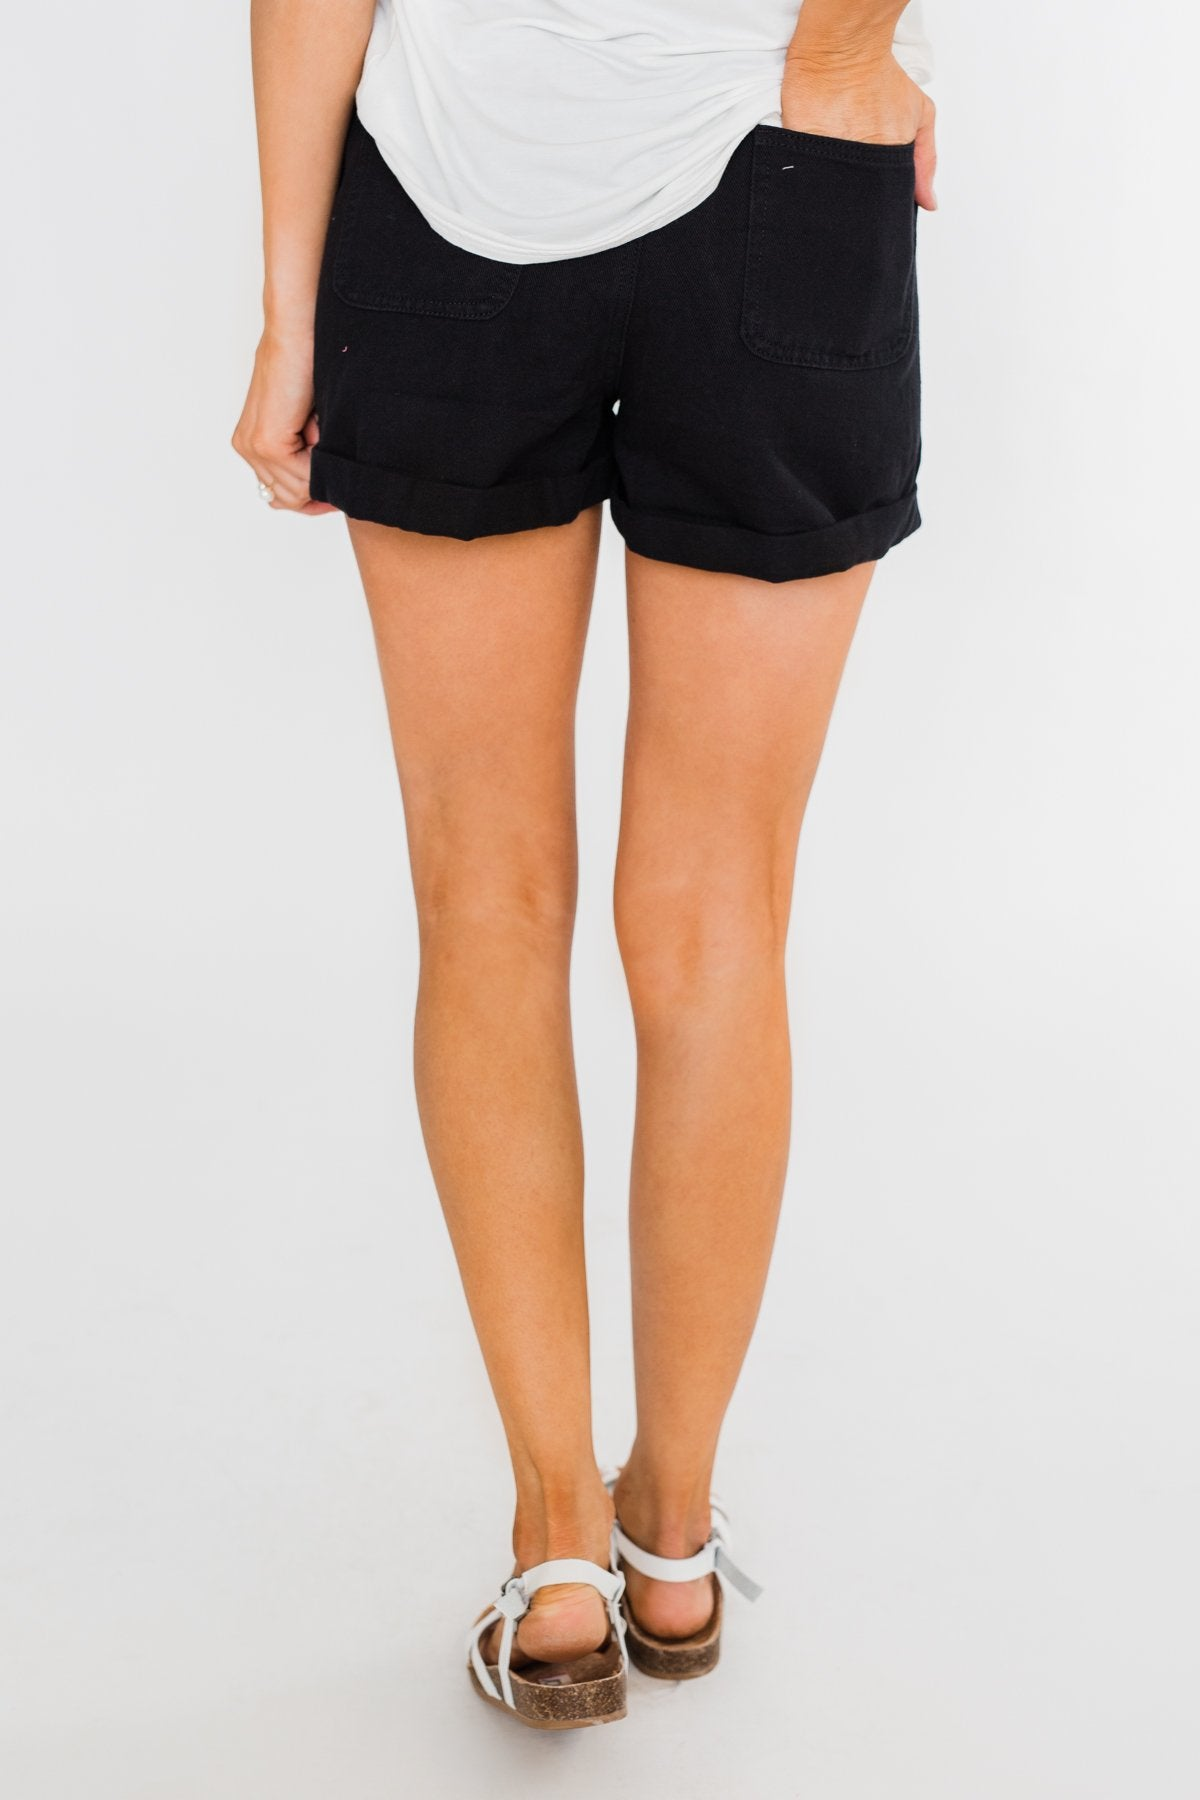 Cinched Waist Shorts- Black